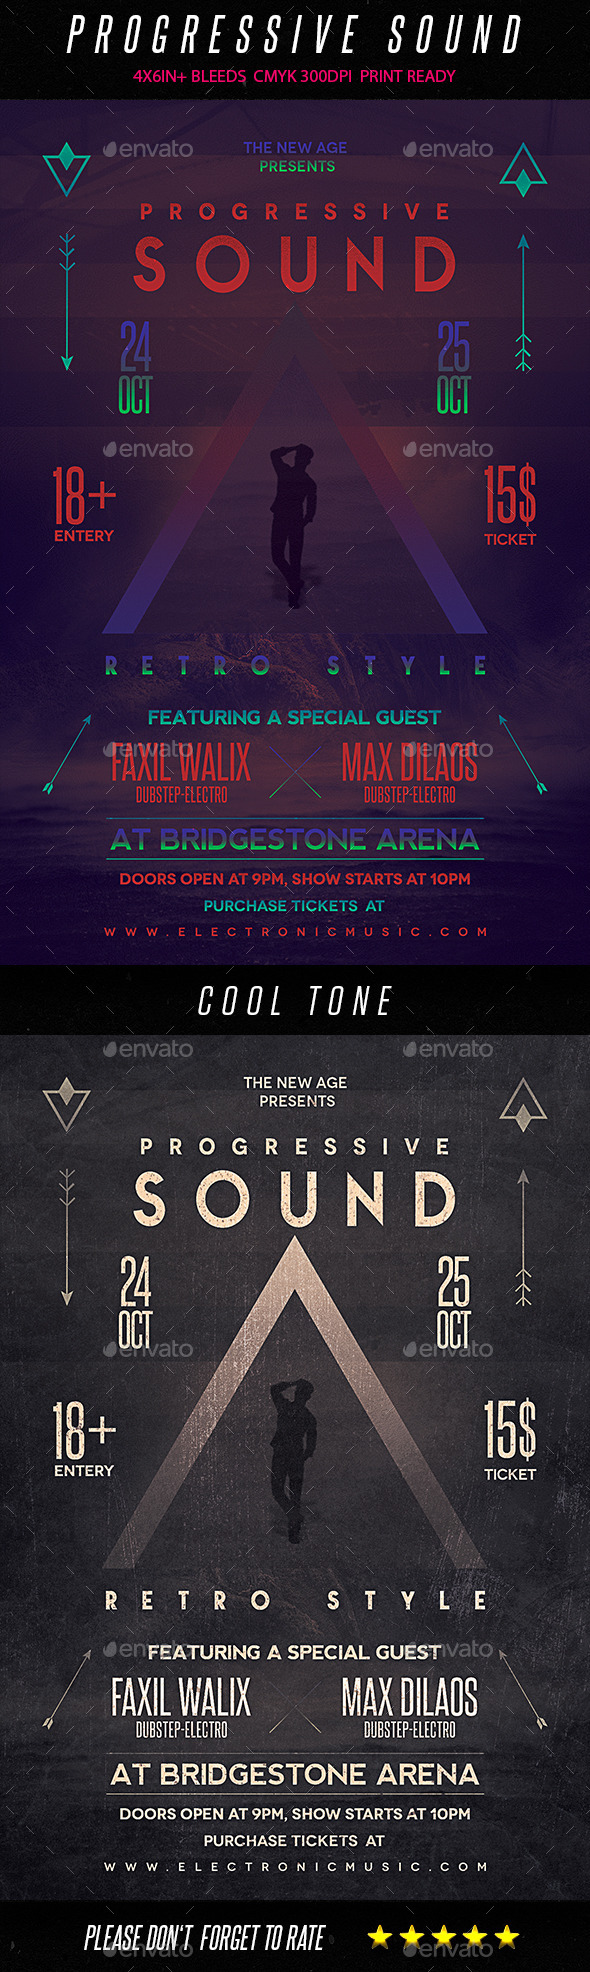 GraphicRiver Progressive Sound Retro Style Flyer 9199381